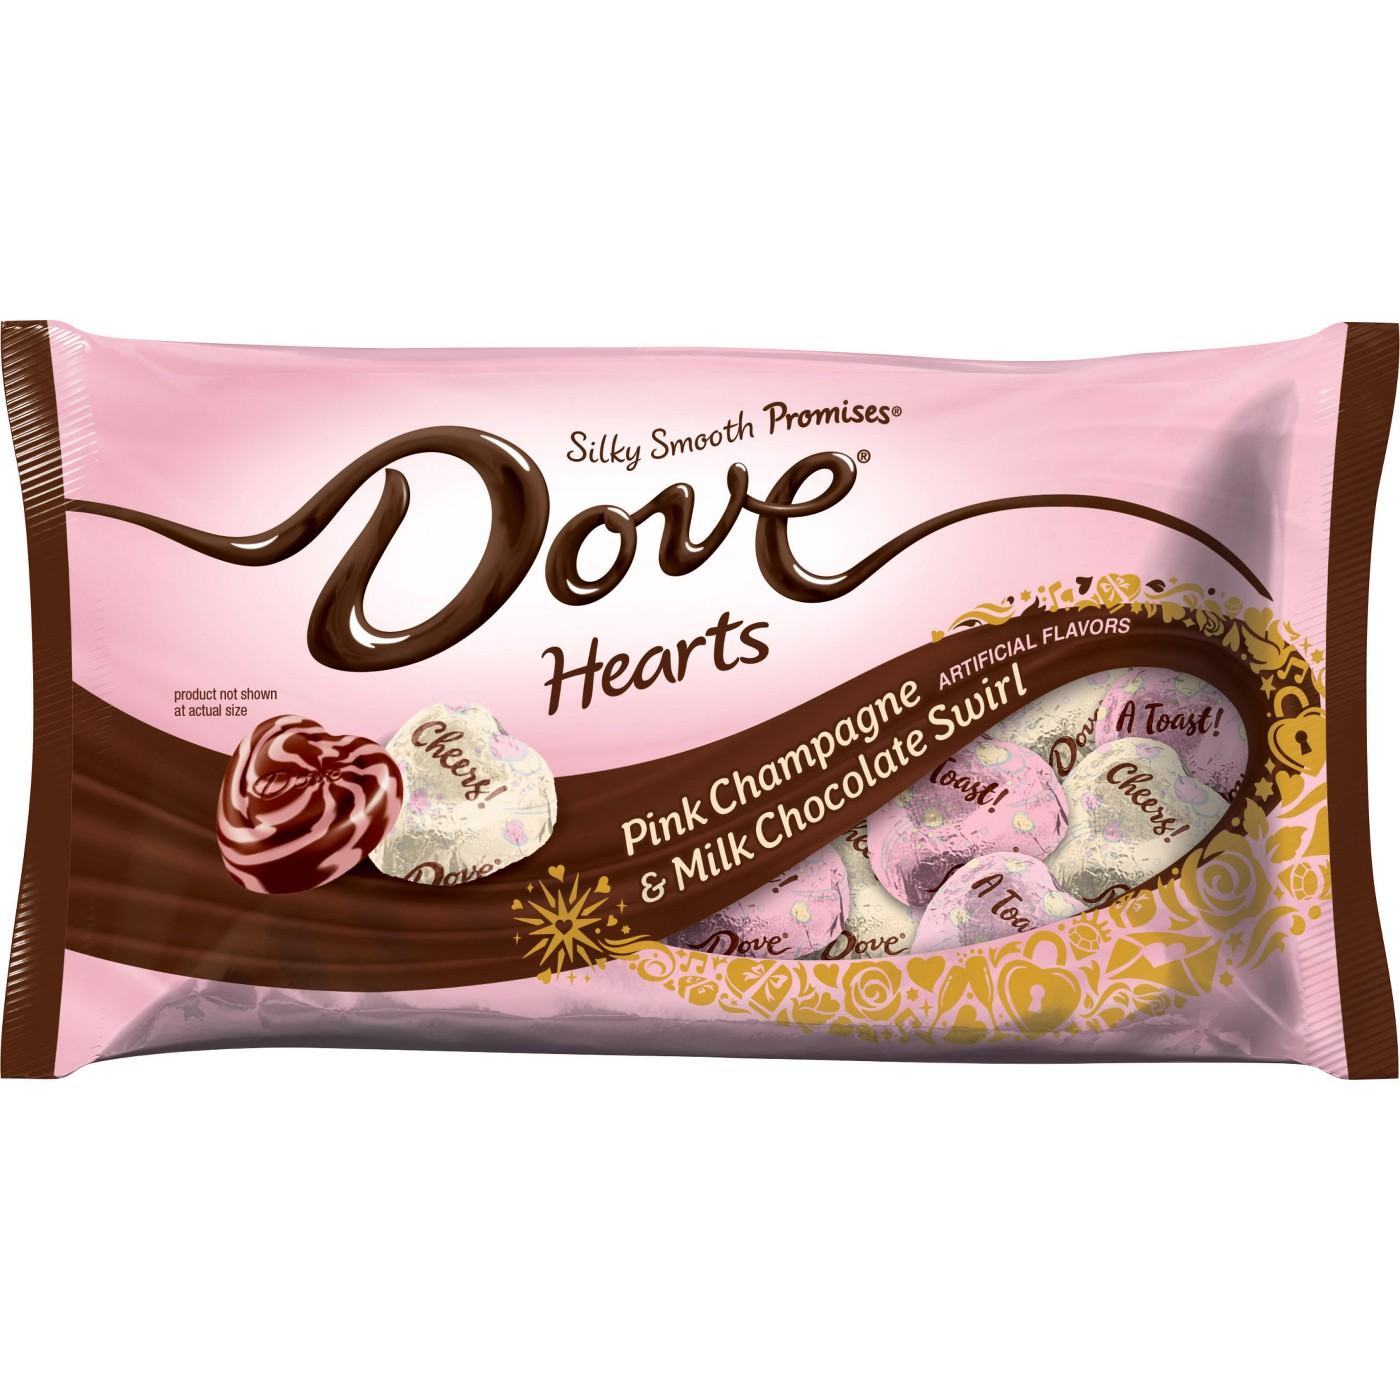 Dove Pink Champagne Milk Chocolate Swirl Hearts